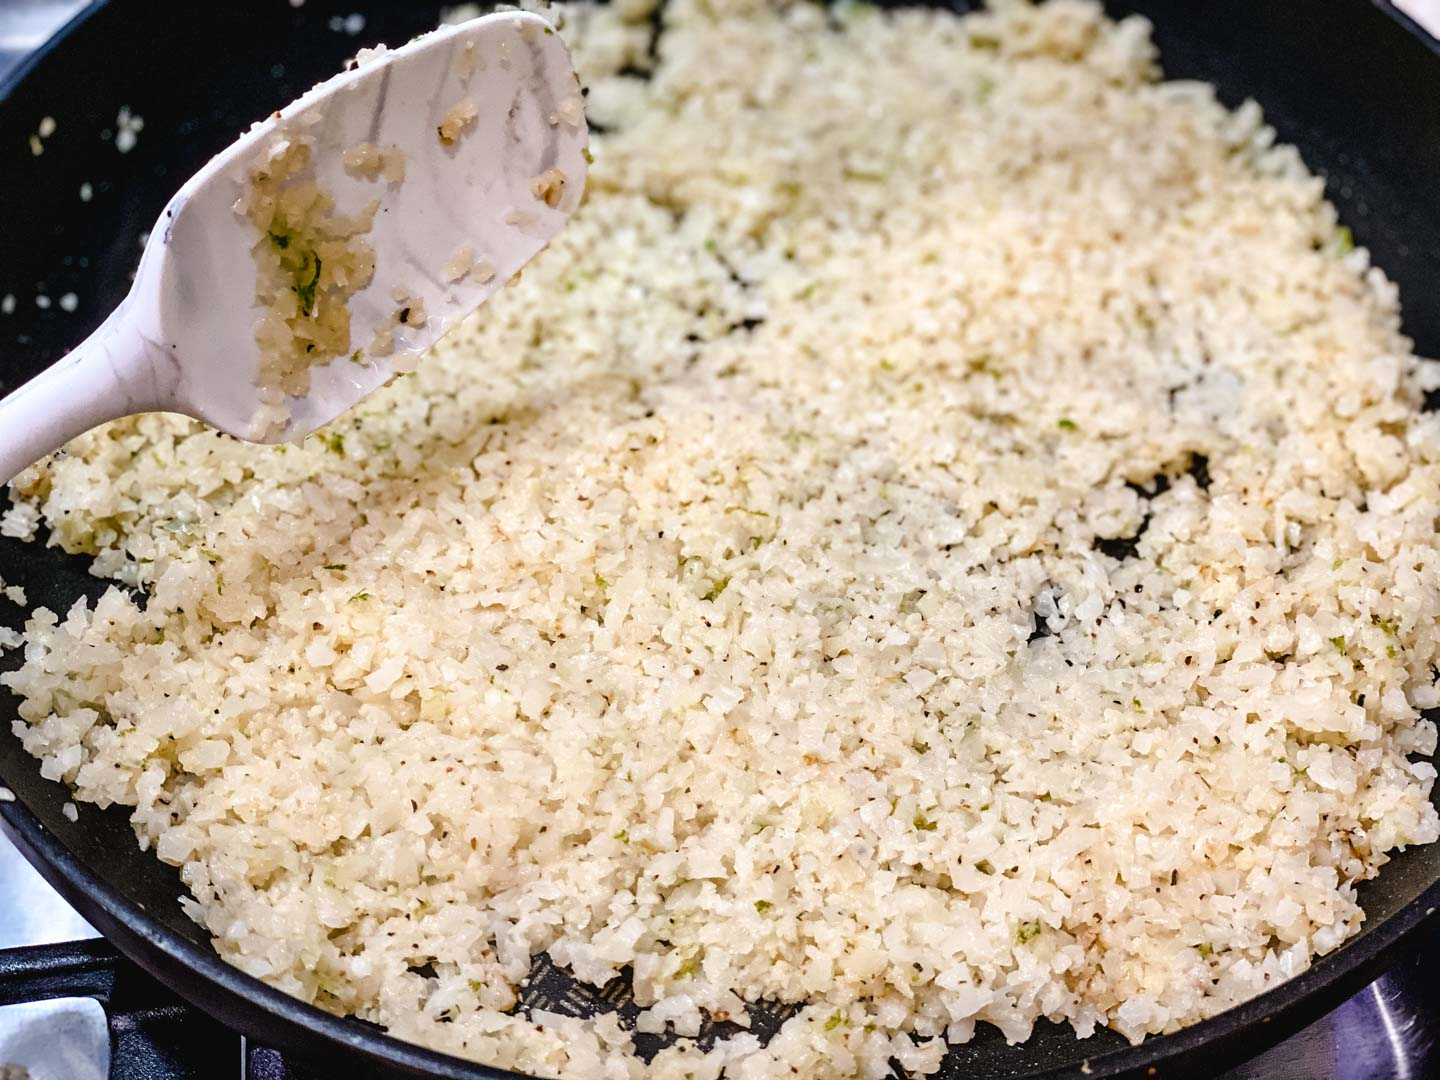 cauliflower rice in a black skillet with a white spoon